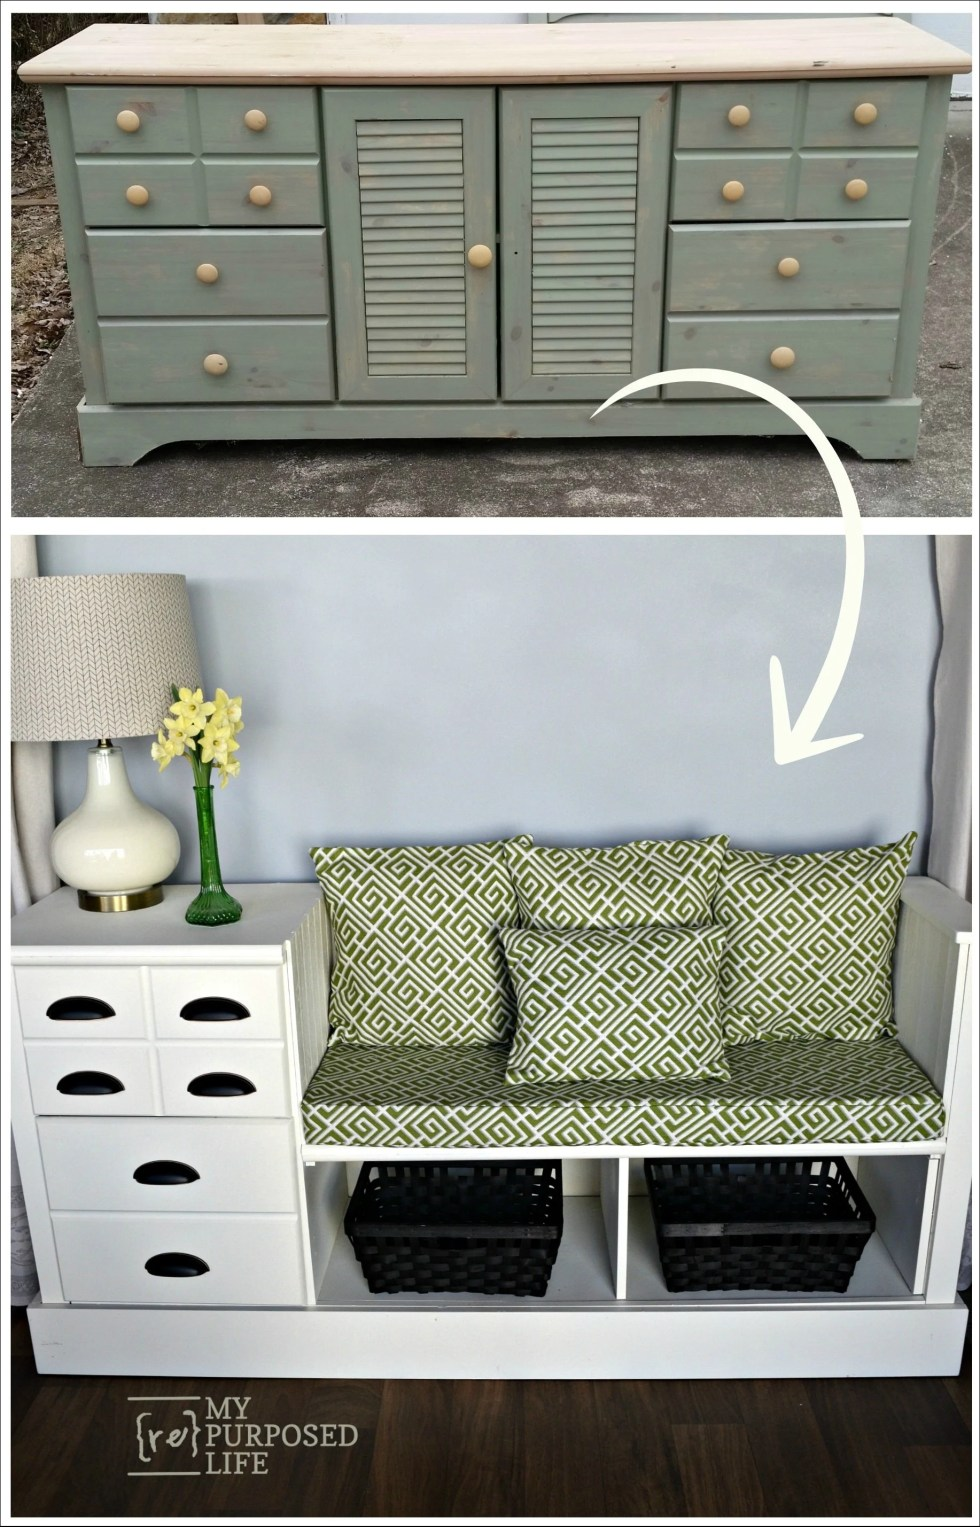 old dresser upcycled fresh new white storage bench for kitchen mudroom and more MyRepurposedLife.com